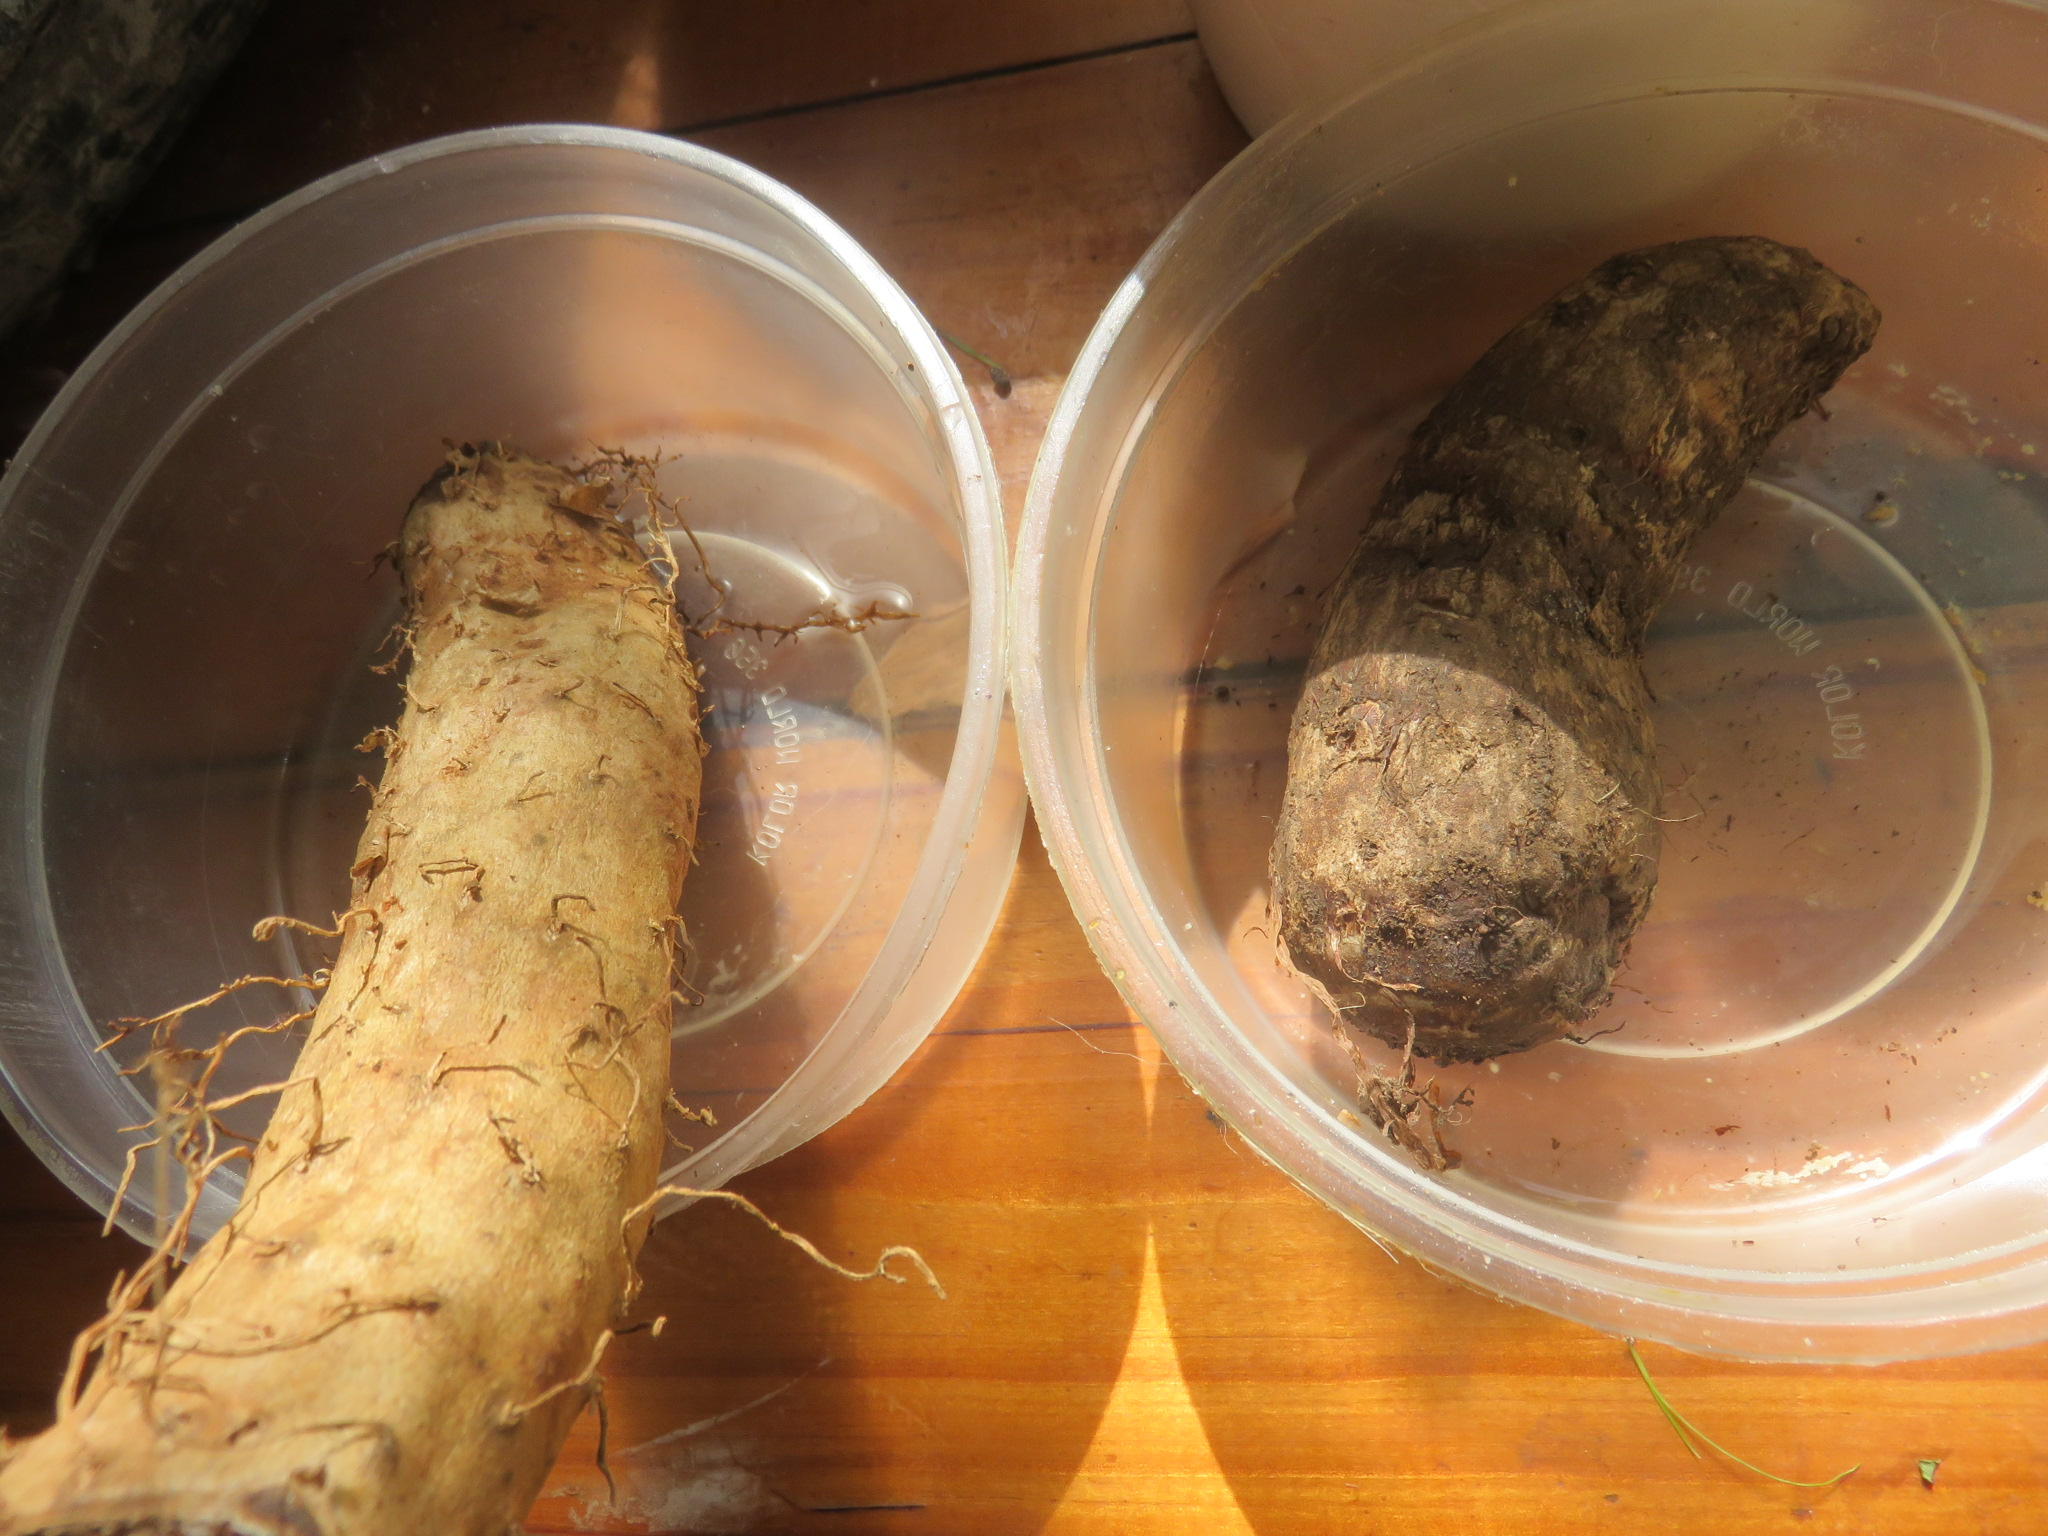 Chinese yam and cocoyam